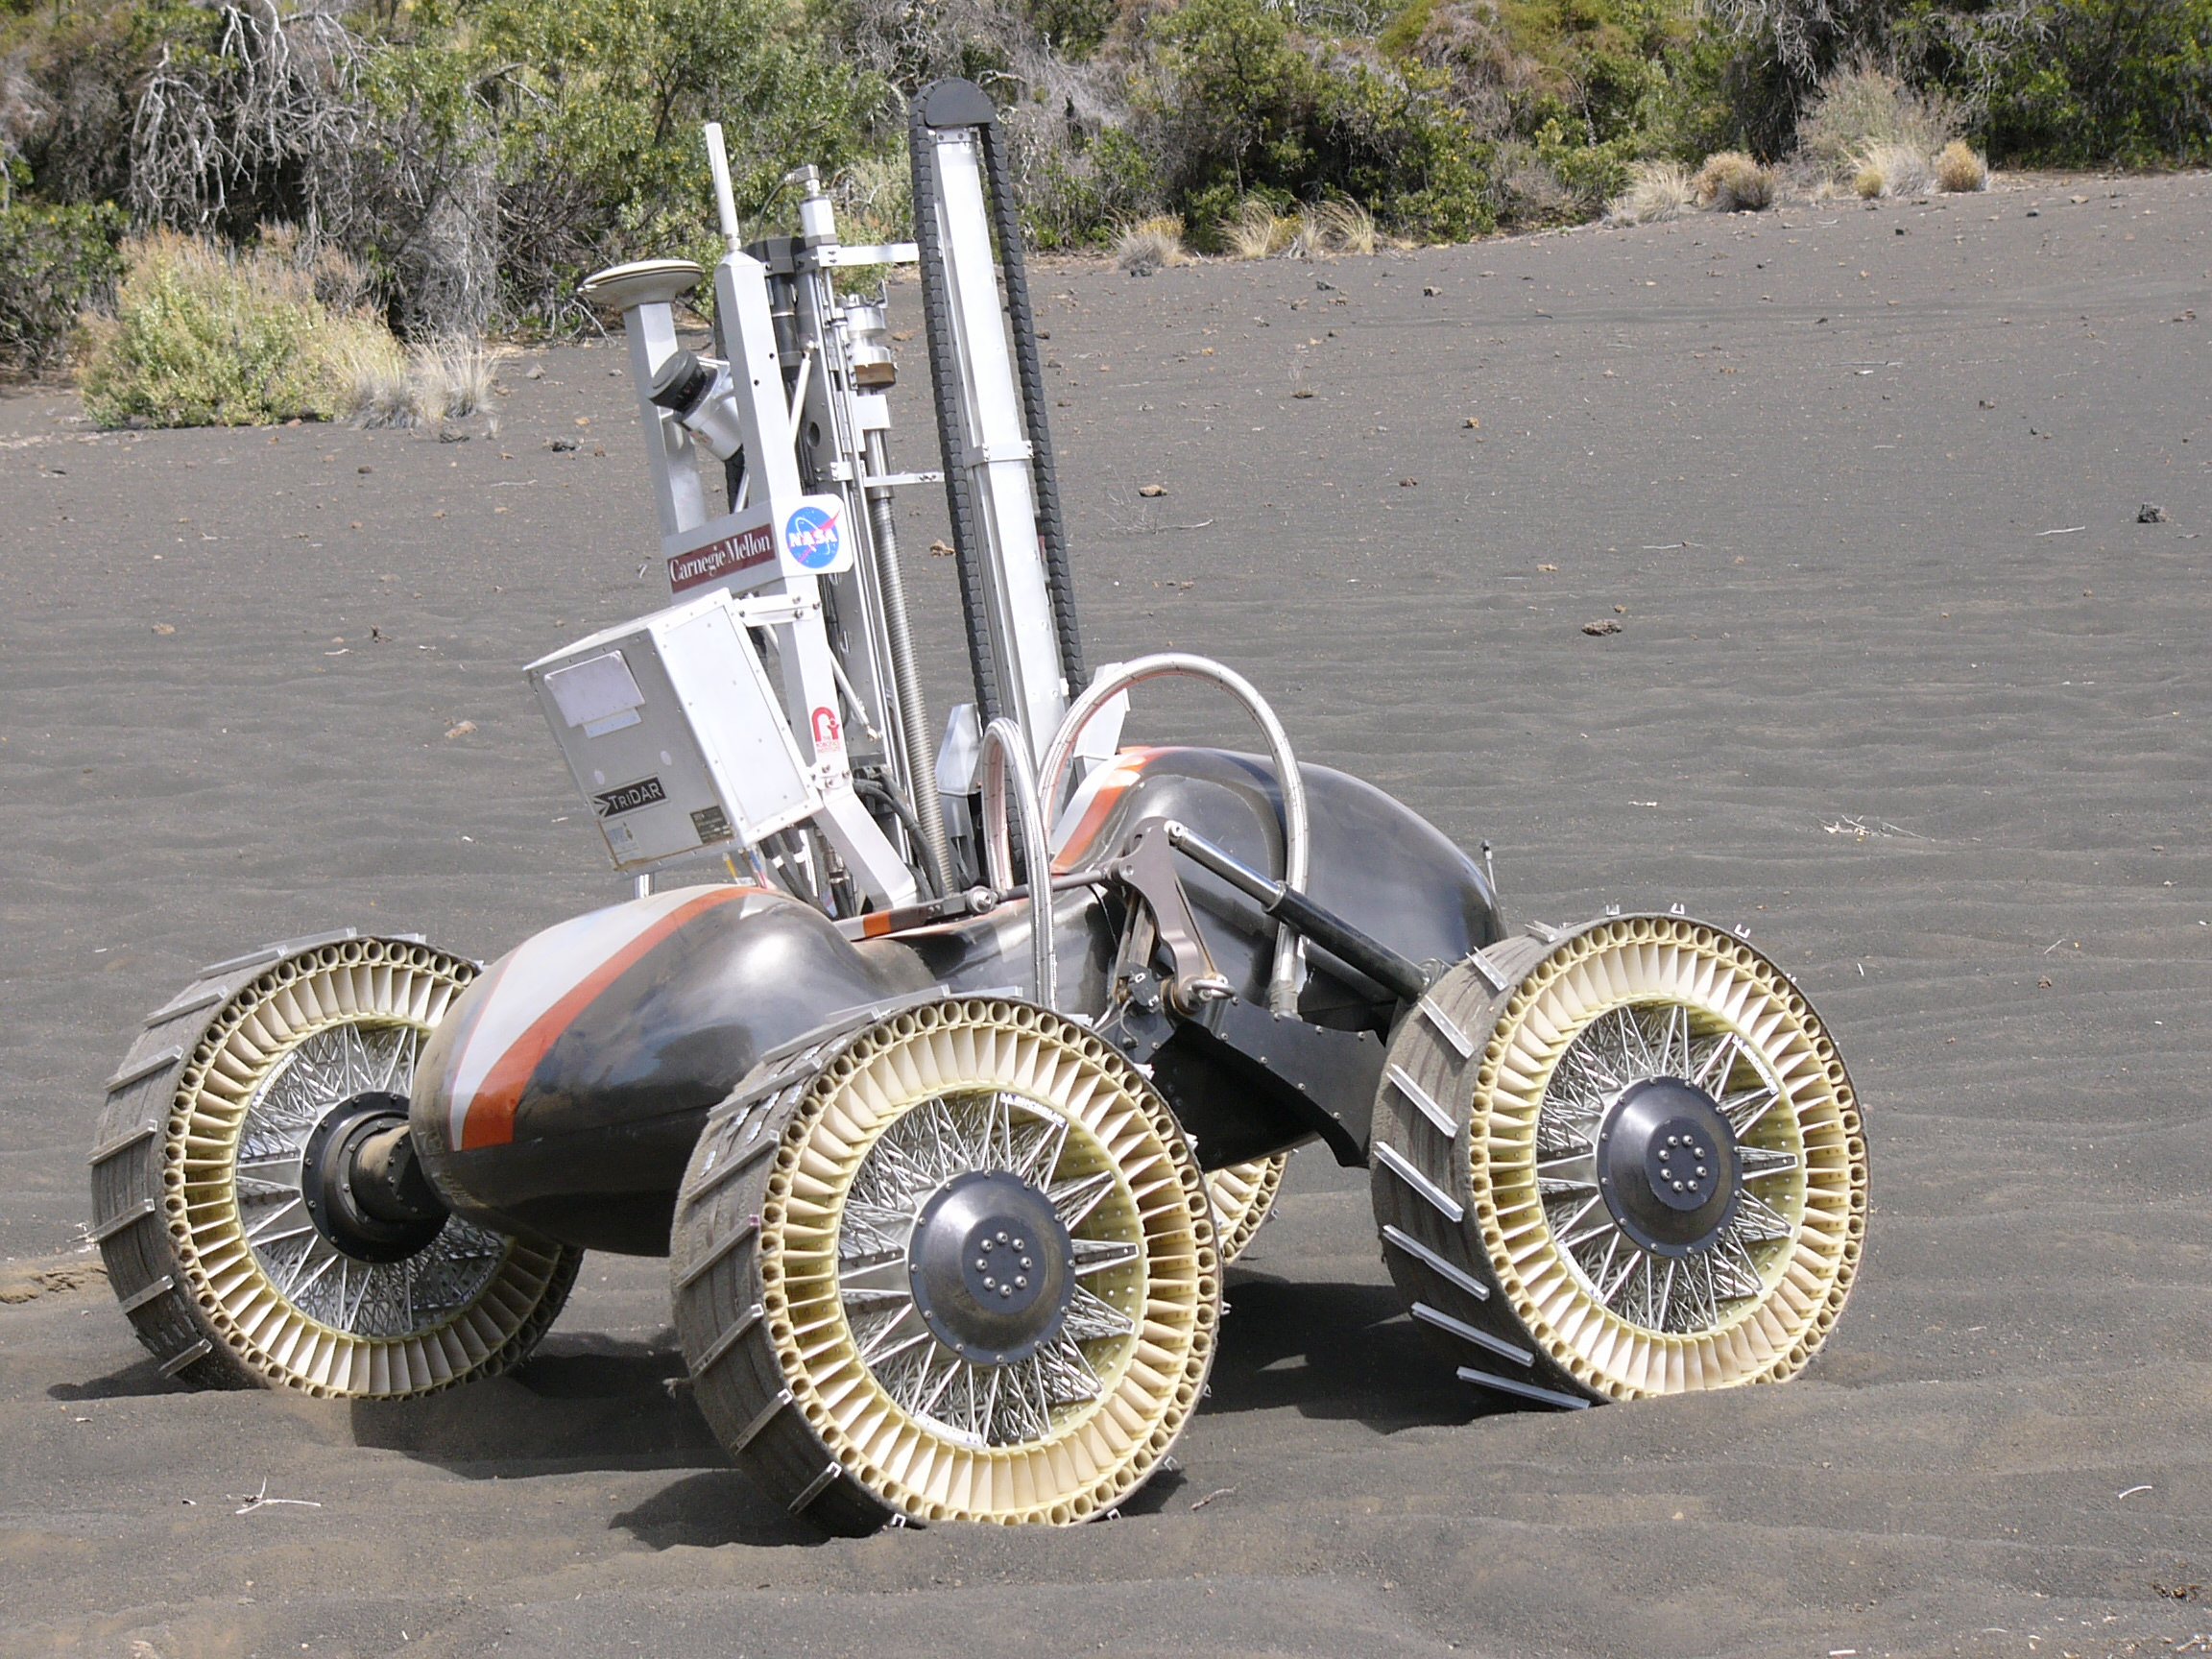 NASA tests lunar rovers and oxygen production technology ...